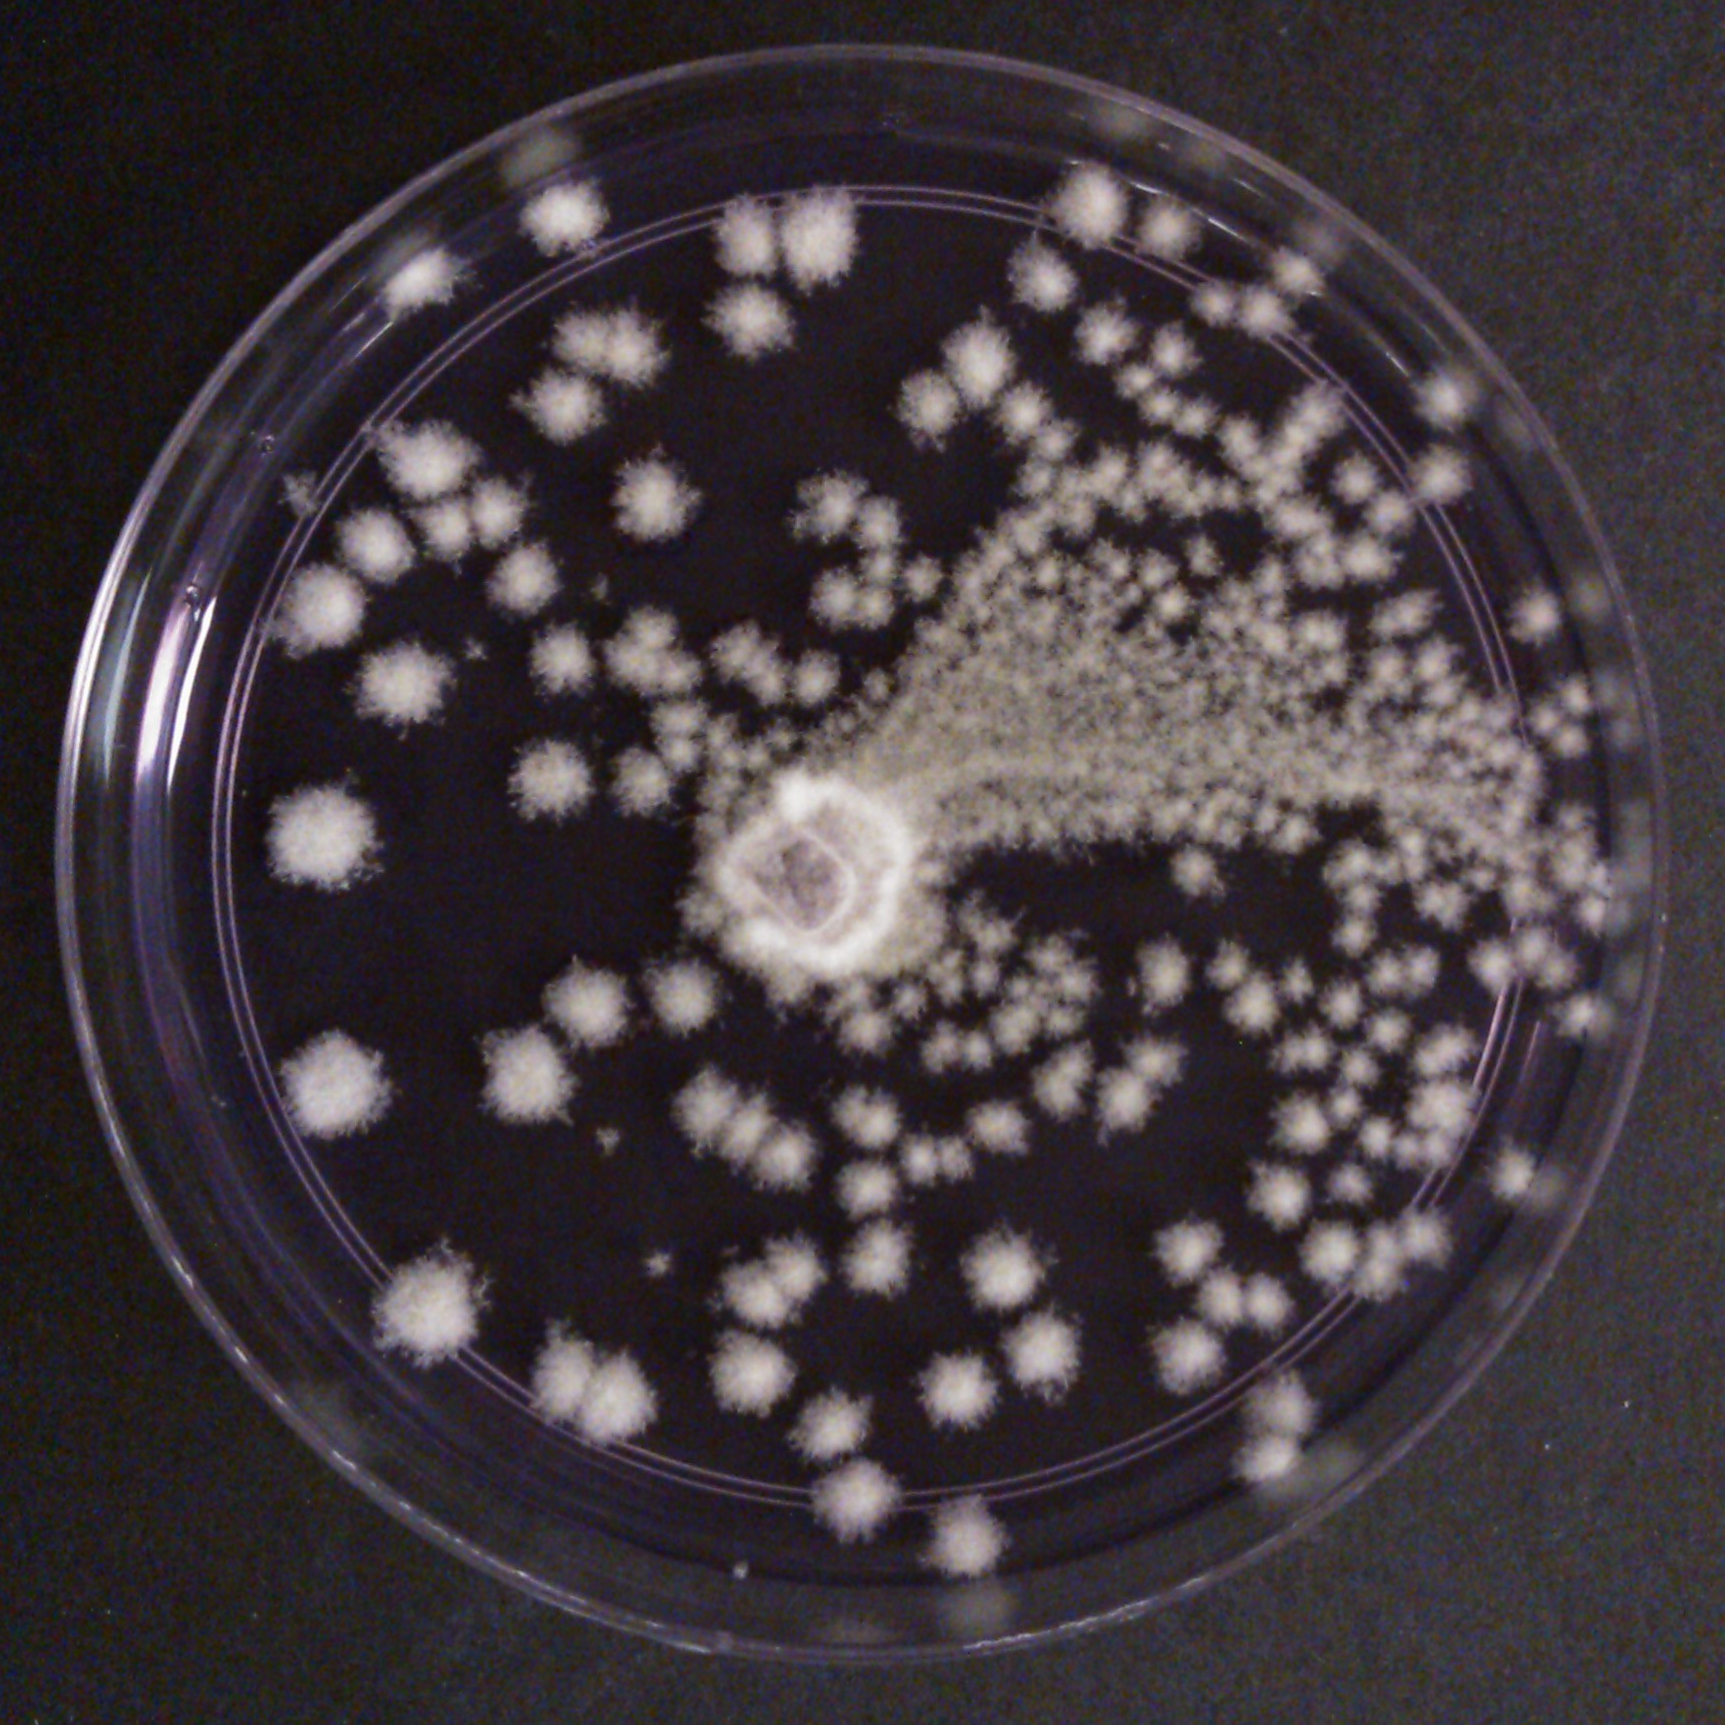 Penicillium sp. on chromium-laden agar. Photo credit to Si Hui.